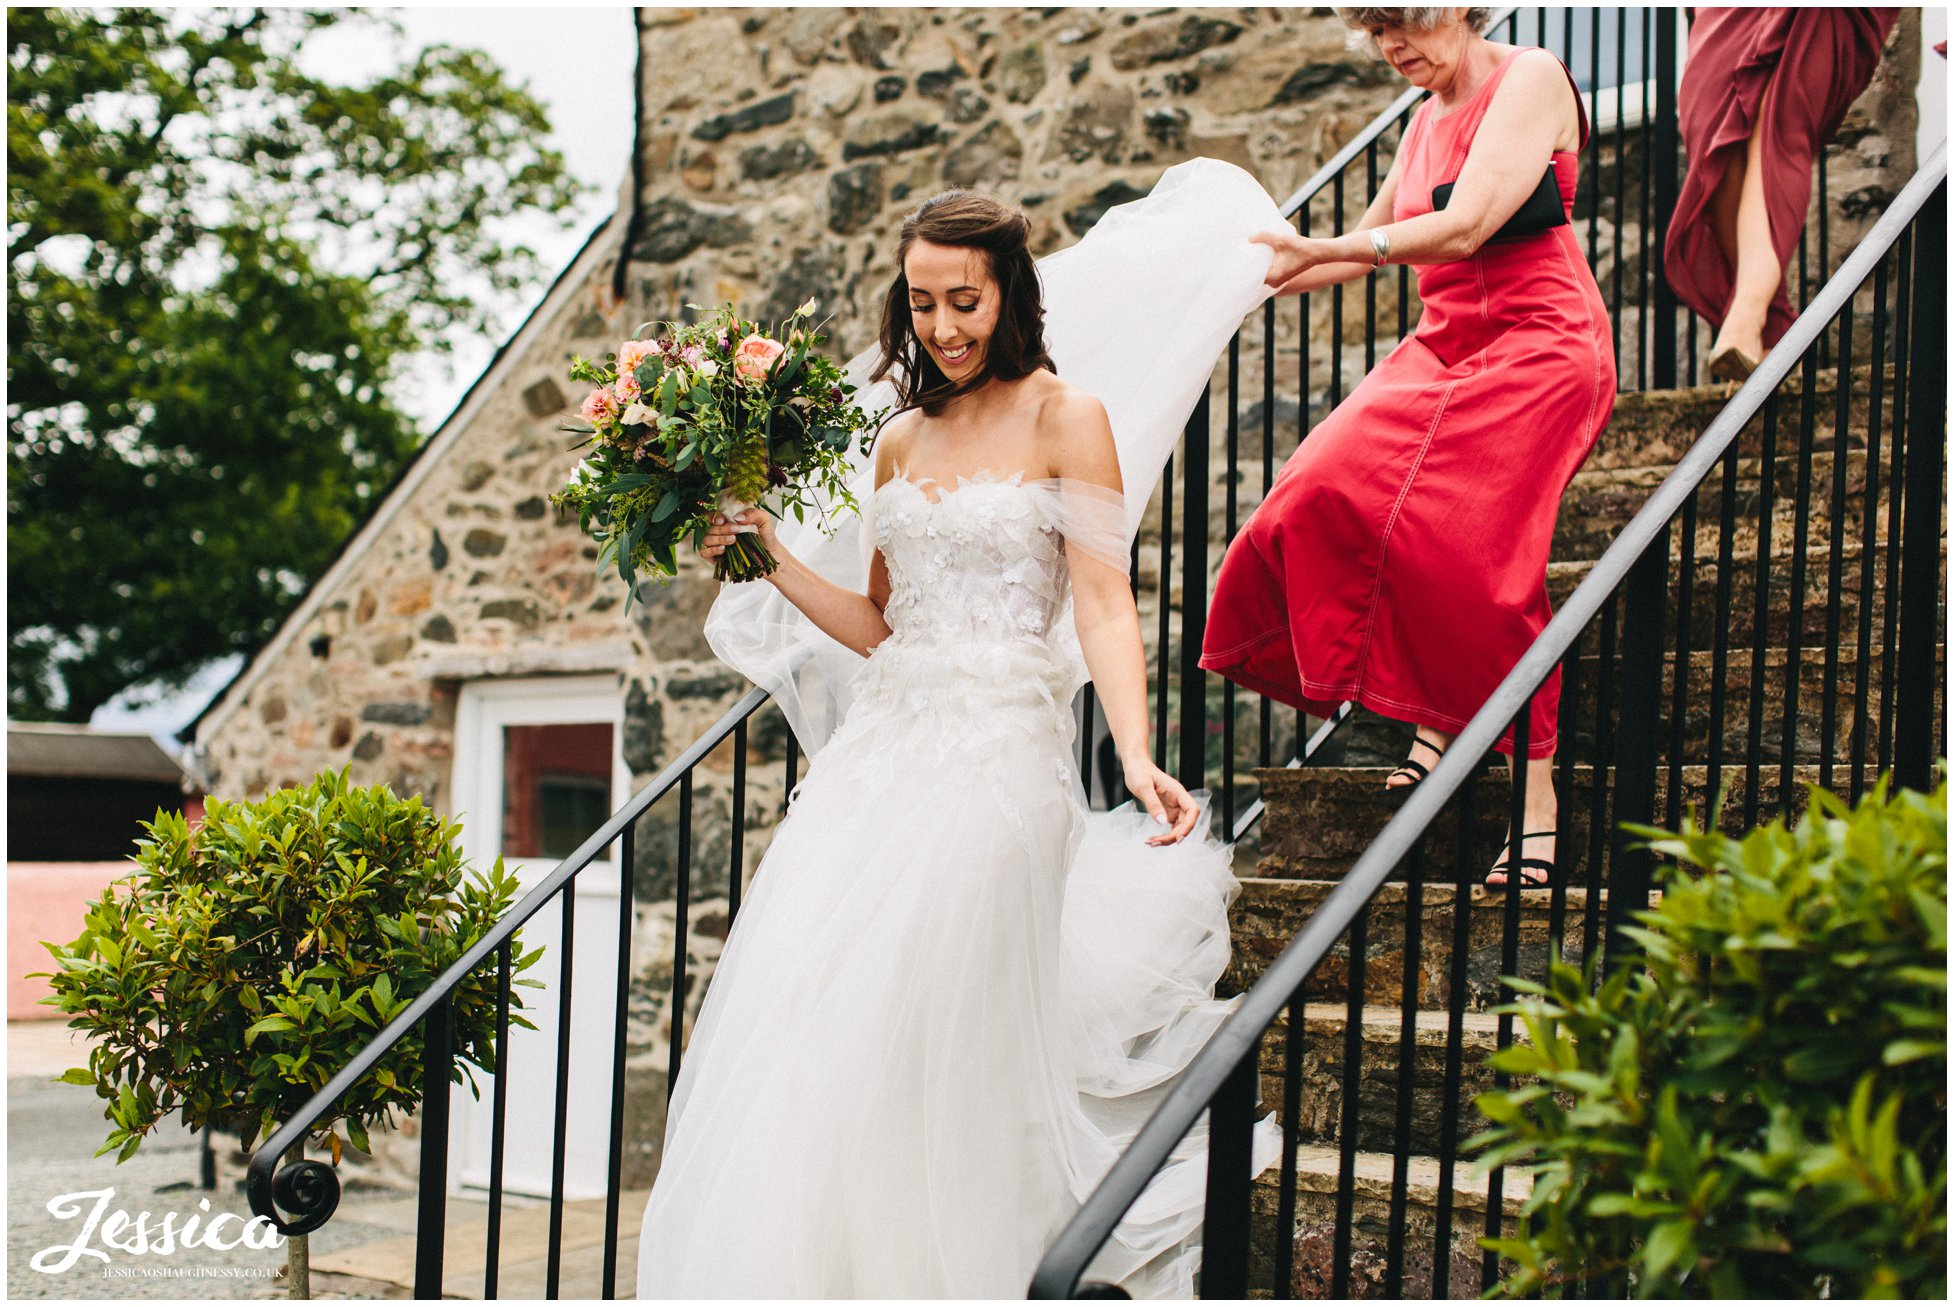 the bride walks down the barn stairs to the ceremony